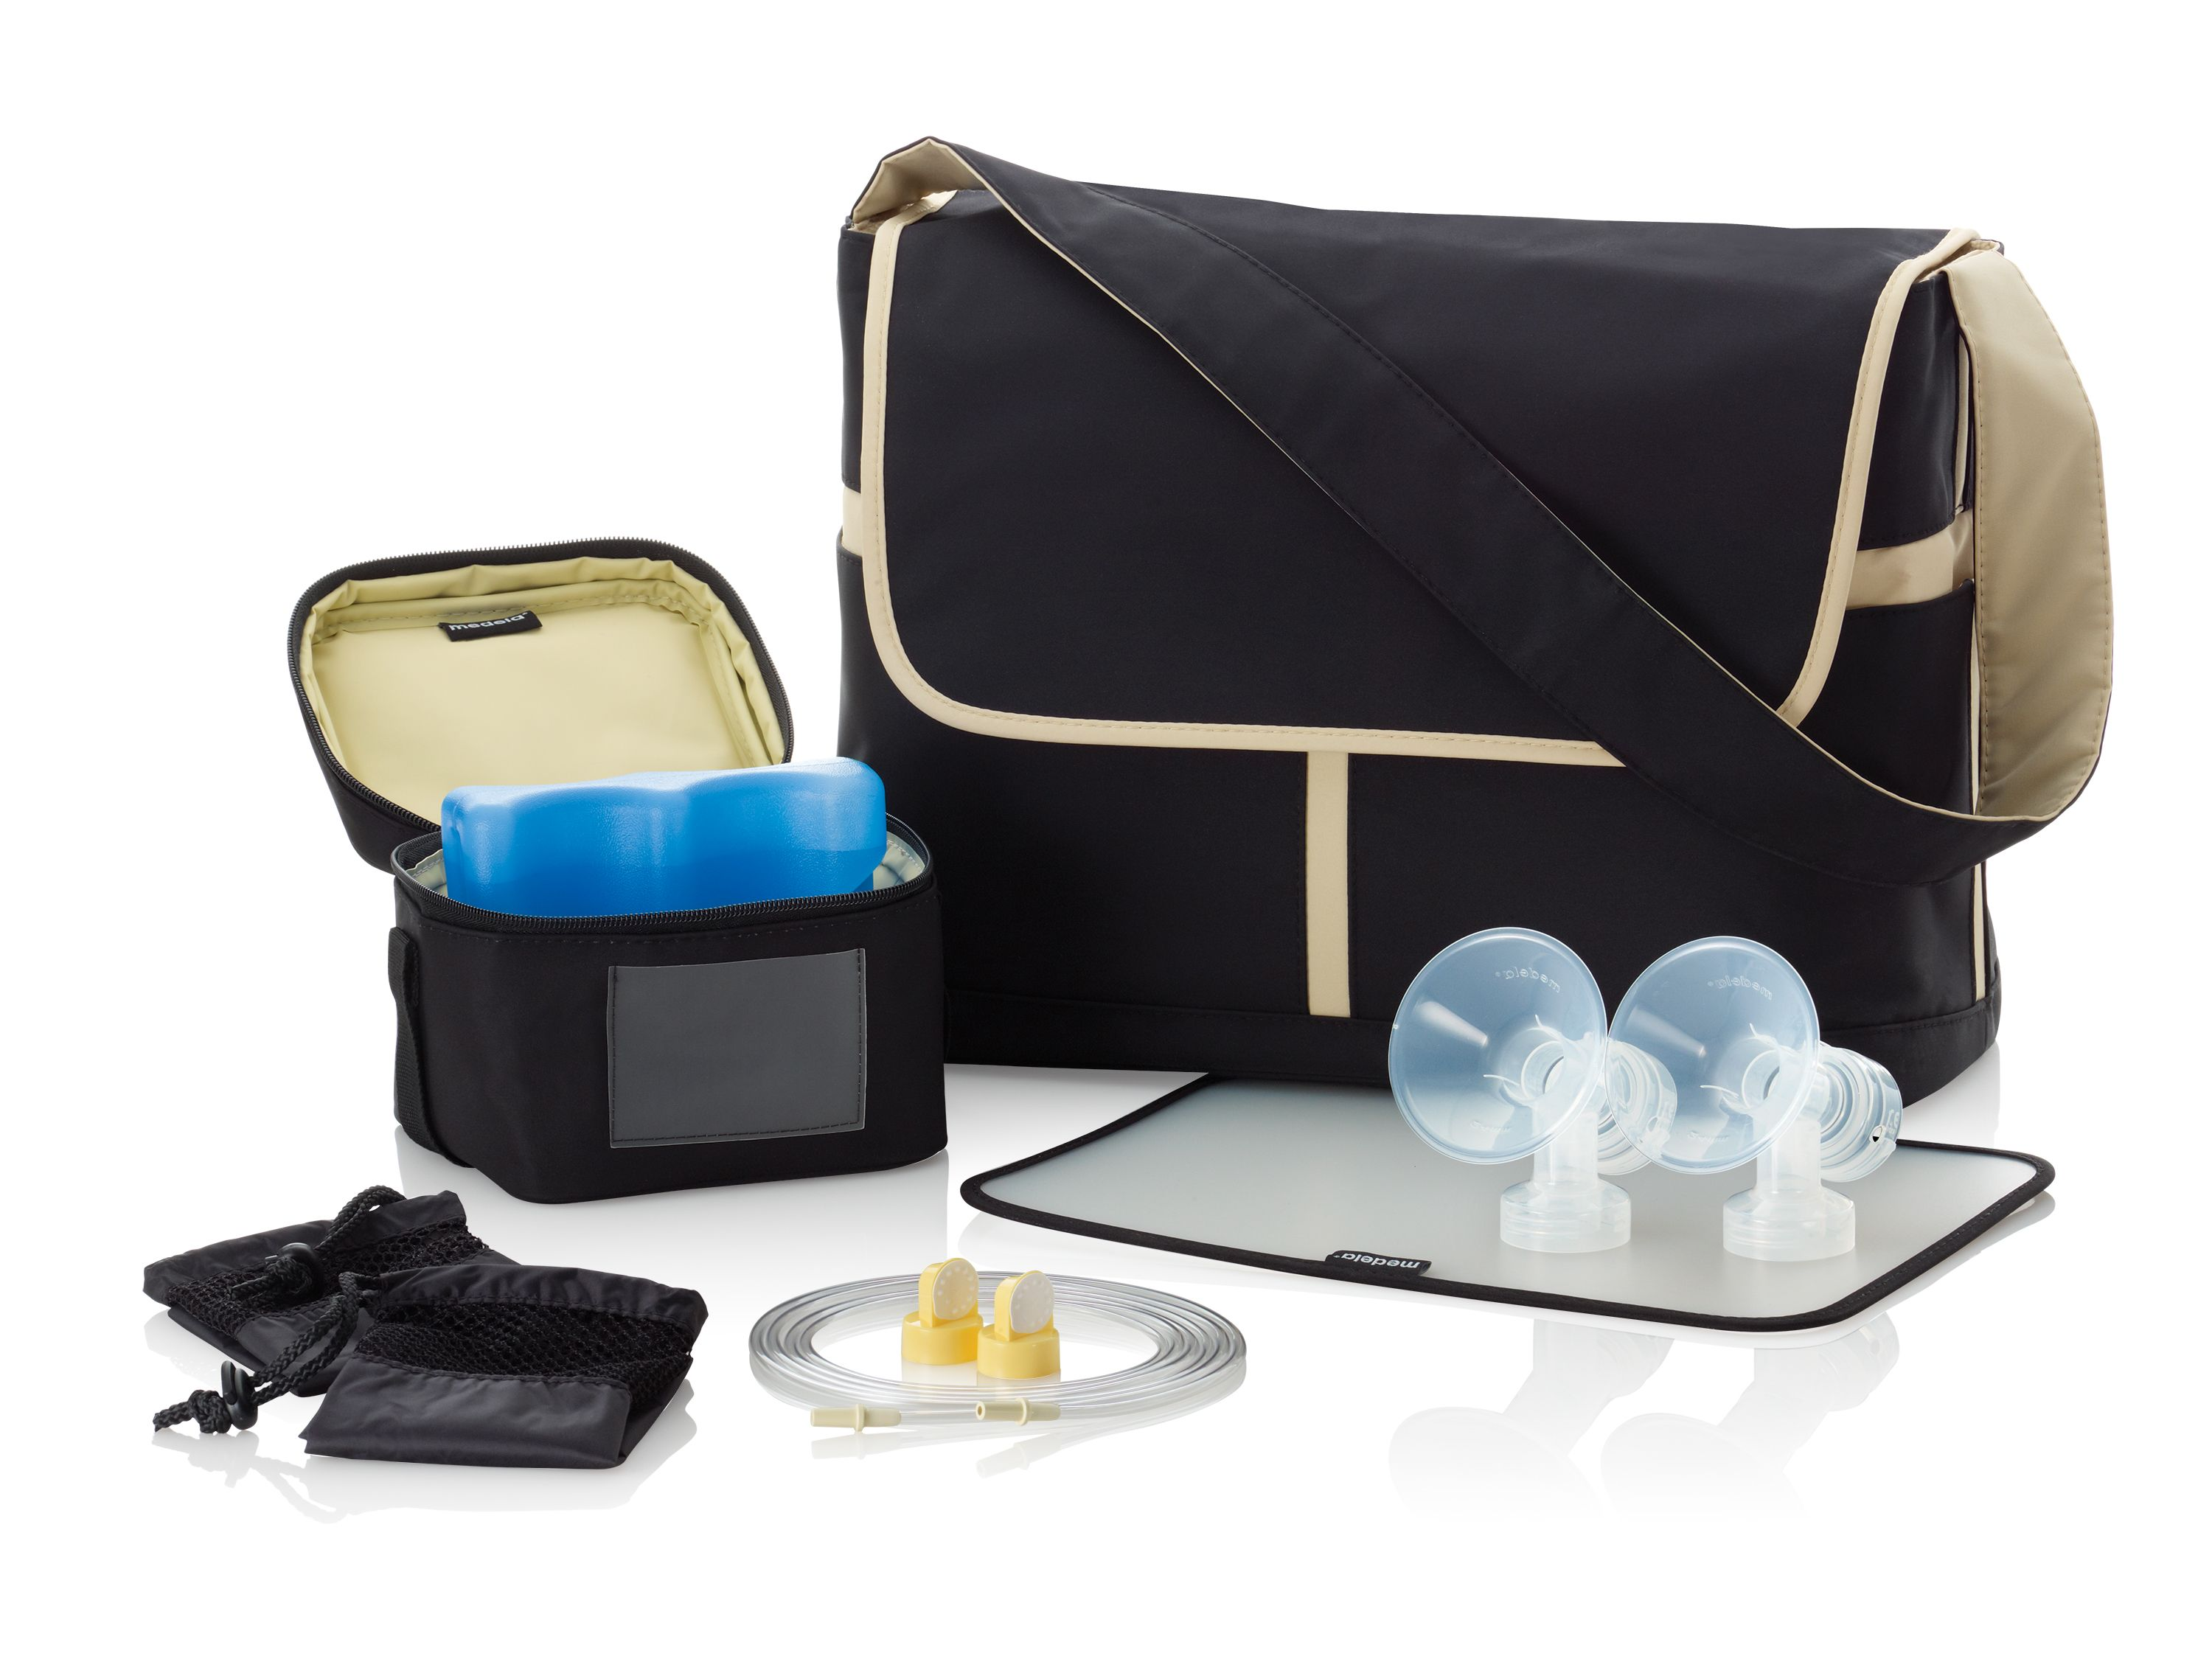 Discreet Portable Simple Pumping On The Go Medela Bag Sets Add Convenience To Insurance Provided Pumps Or Allow You Refresh Your Pump In Style